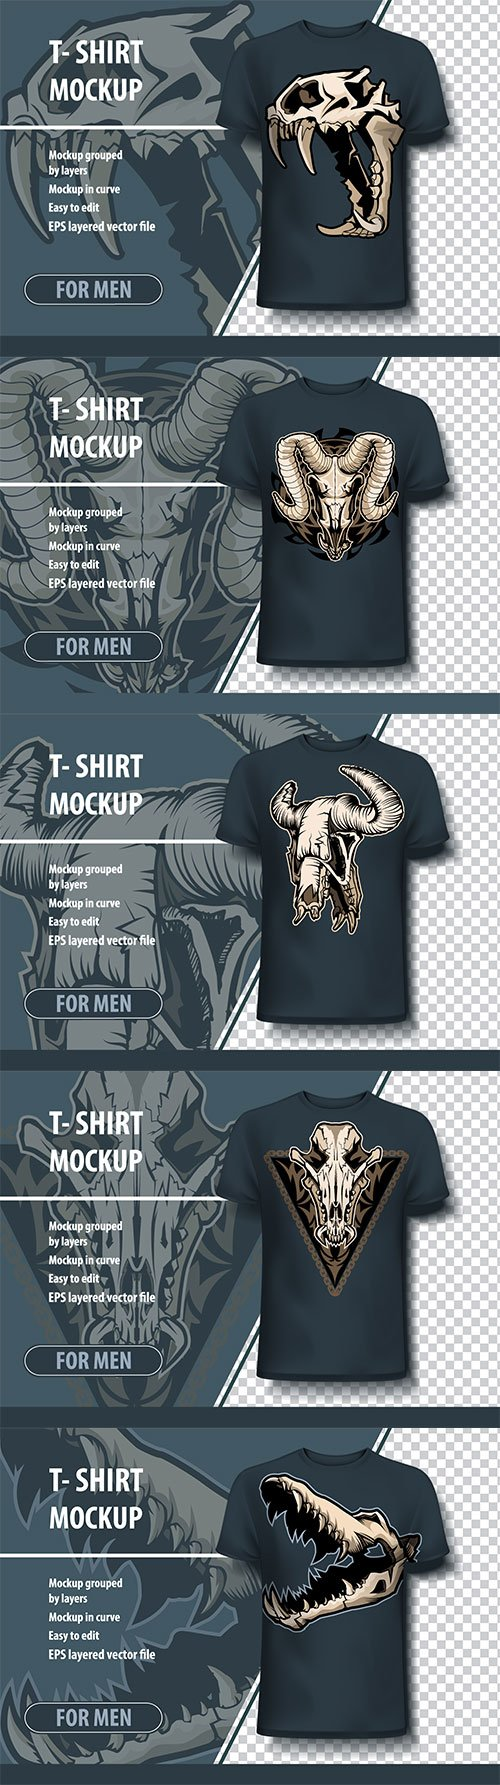 Mock-up template for printing on T-shirts